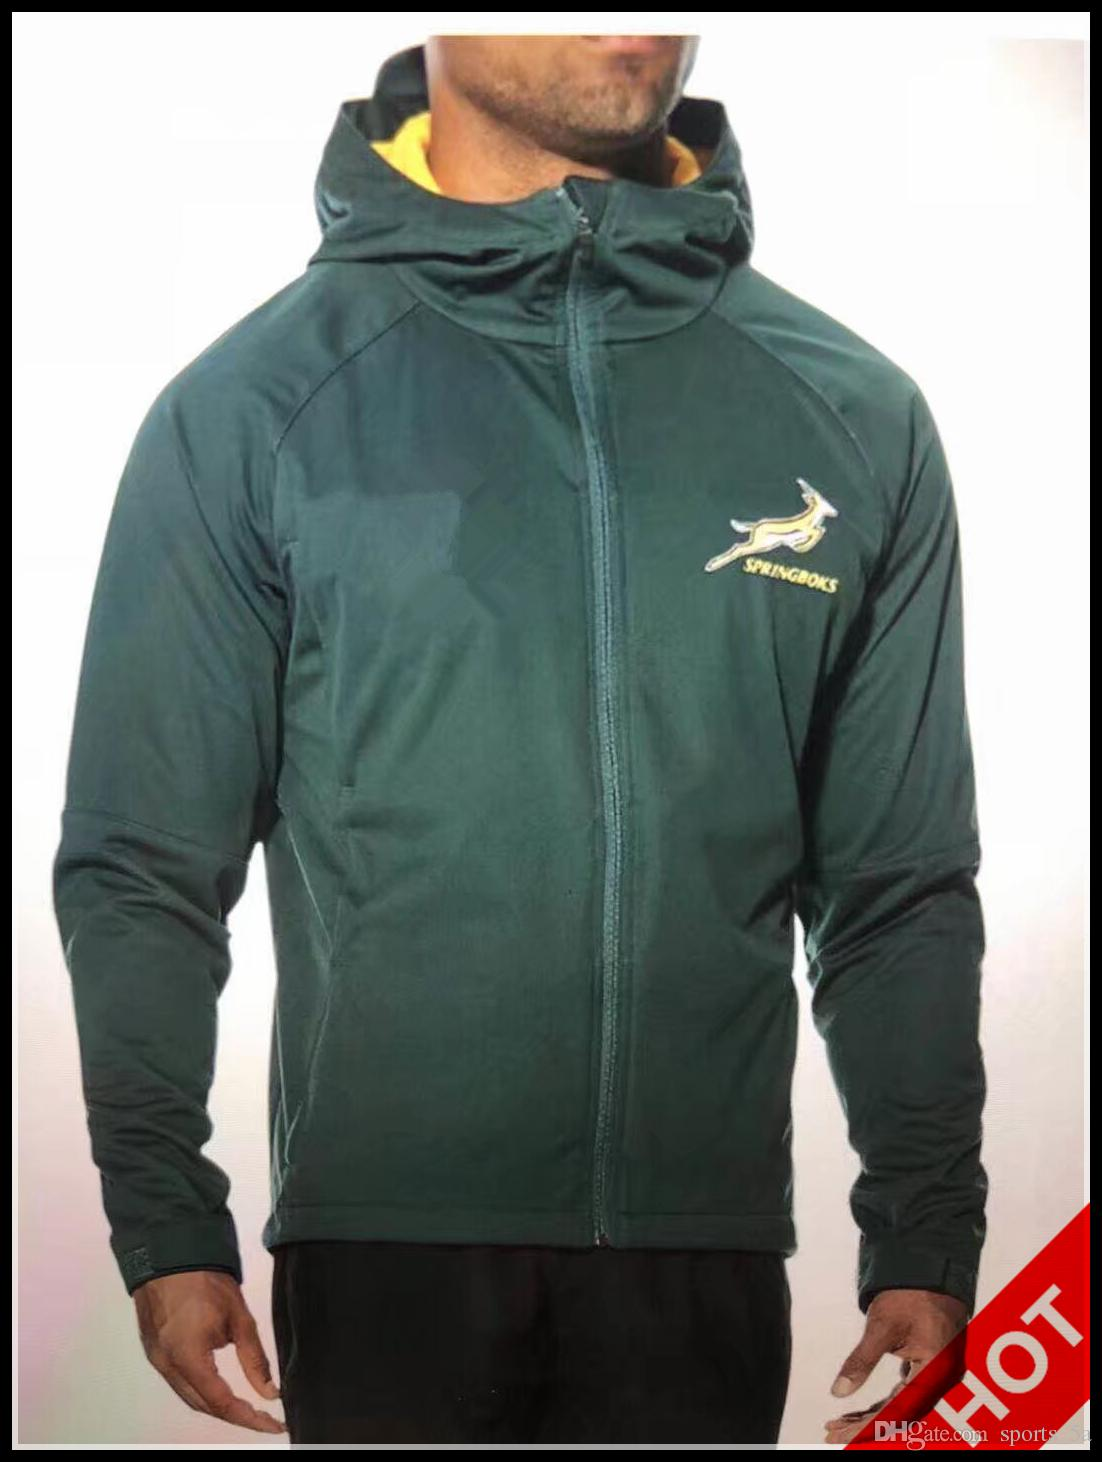 7d7215c3963 Hot Sales 2019 South Africa Home Jersey SPRINGBOK SIDE LINER JACKET Hoodies  South African National Team Rugby Jerseys Hoodie Jacket S-3xl South Africa  ...